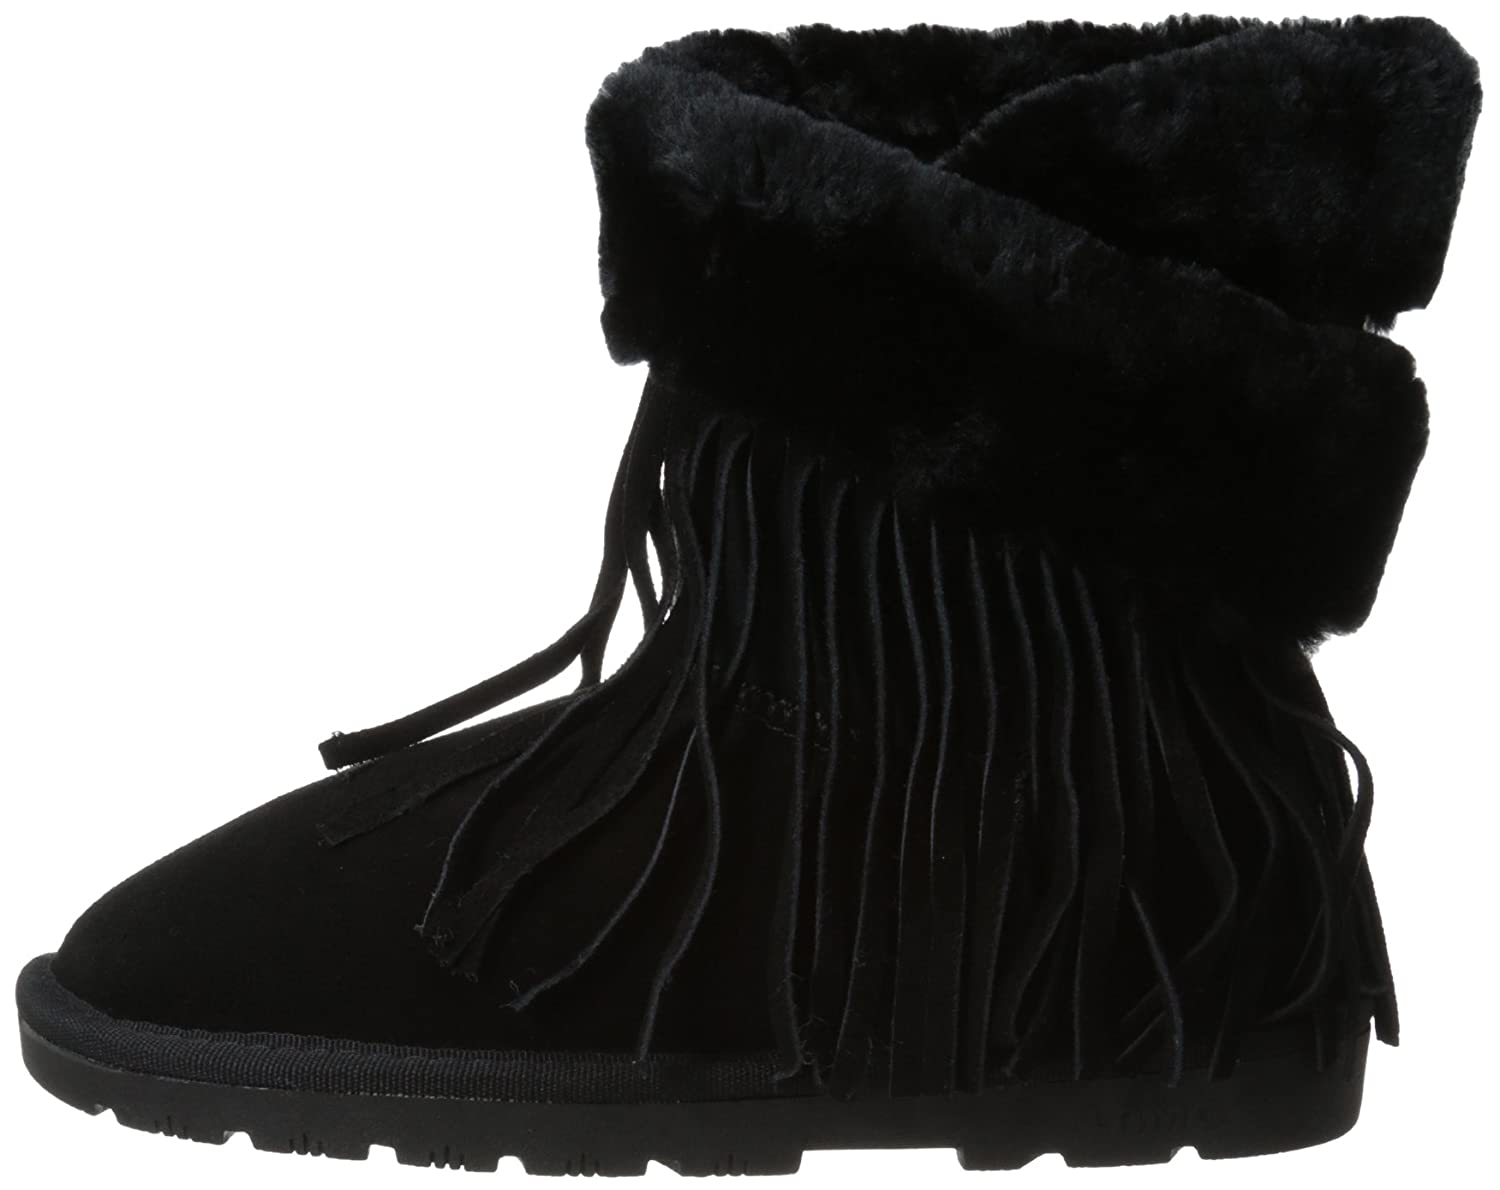 Lamo Women's Fringe Wrap Boot B00PWXYEKC 11 B(M) US|Black